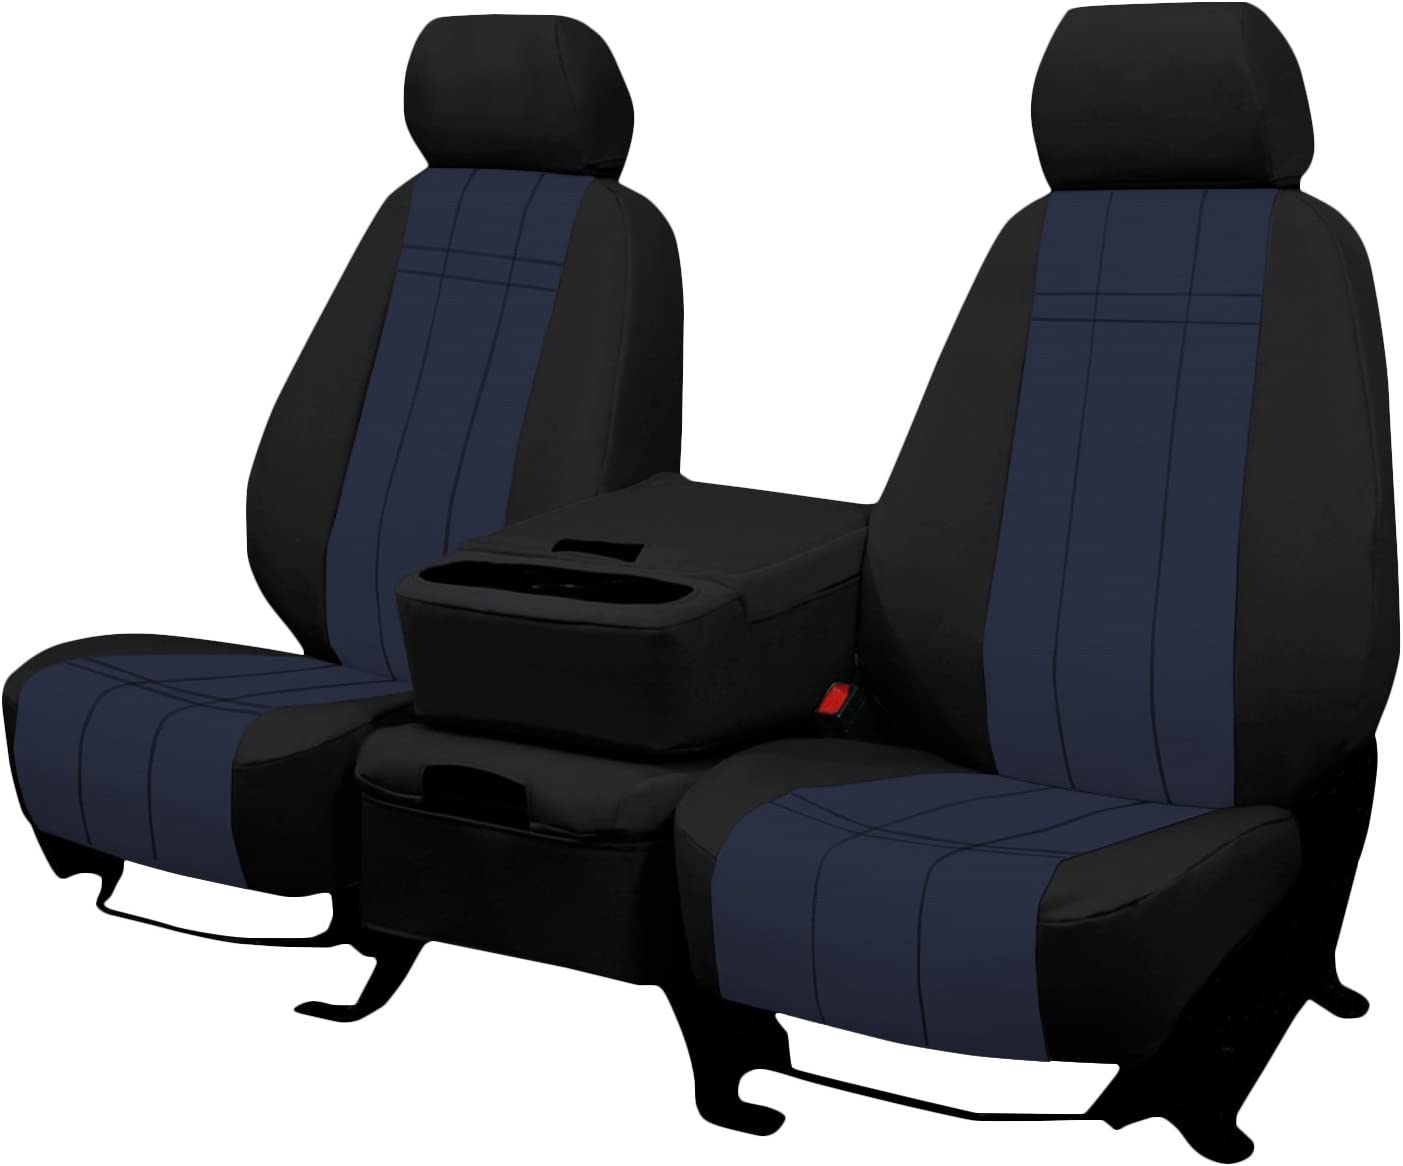 2019-2020 1500 New Body Style in Blue for 40//20//40 Bench with Opening Console and Center Underseat Storage Front Seats: ShearComfort Custom Waterproof Cordura Seat Covers for GMC Sierra